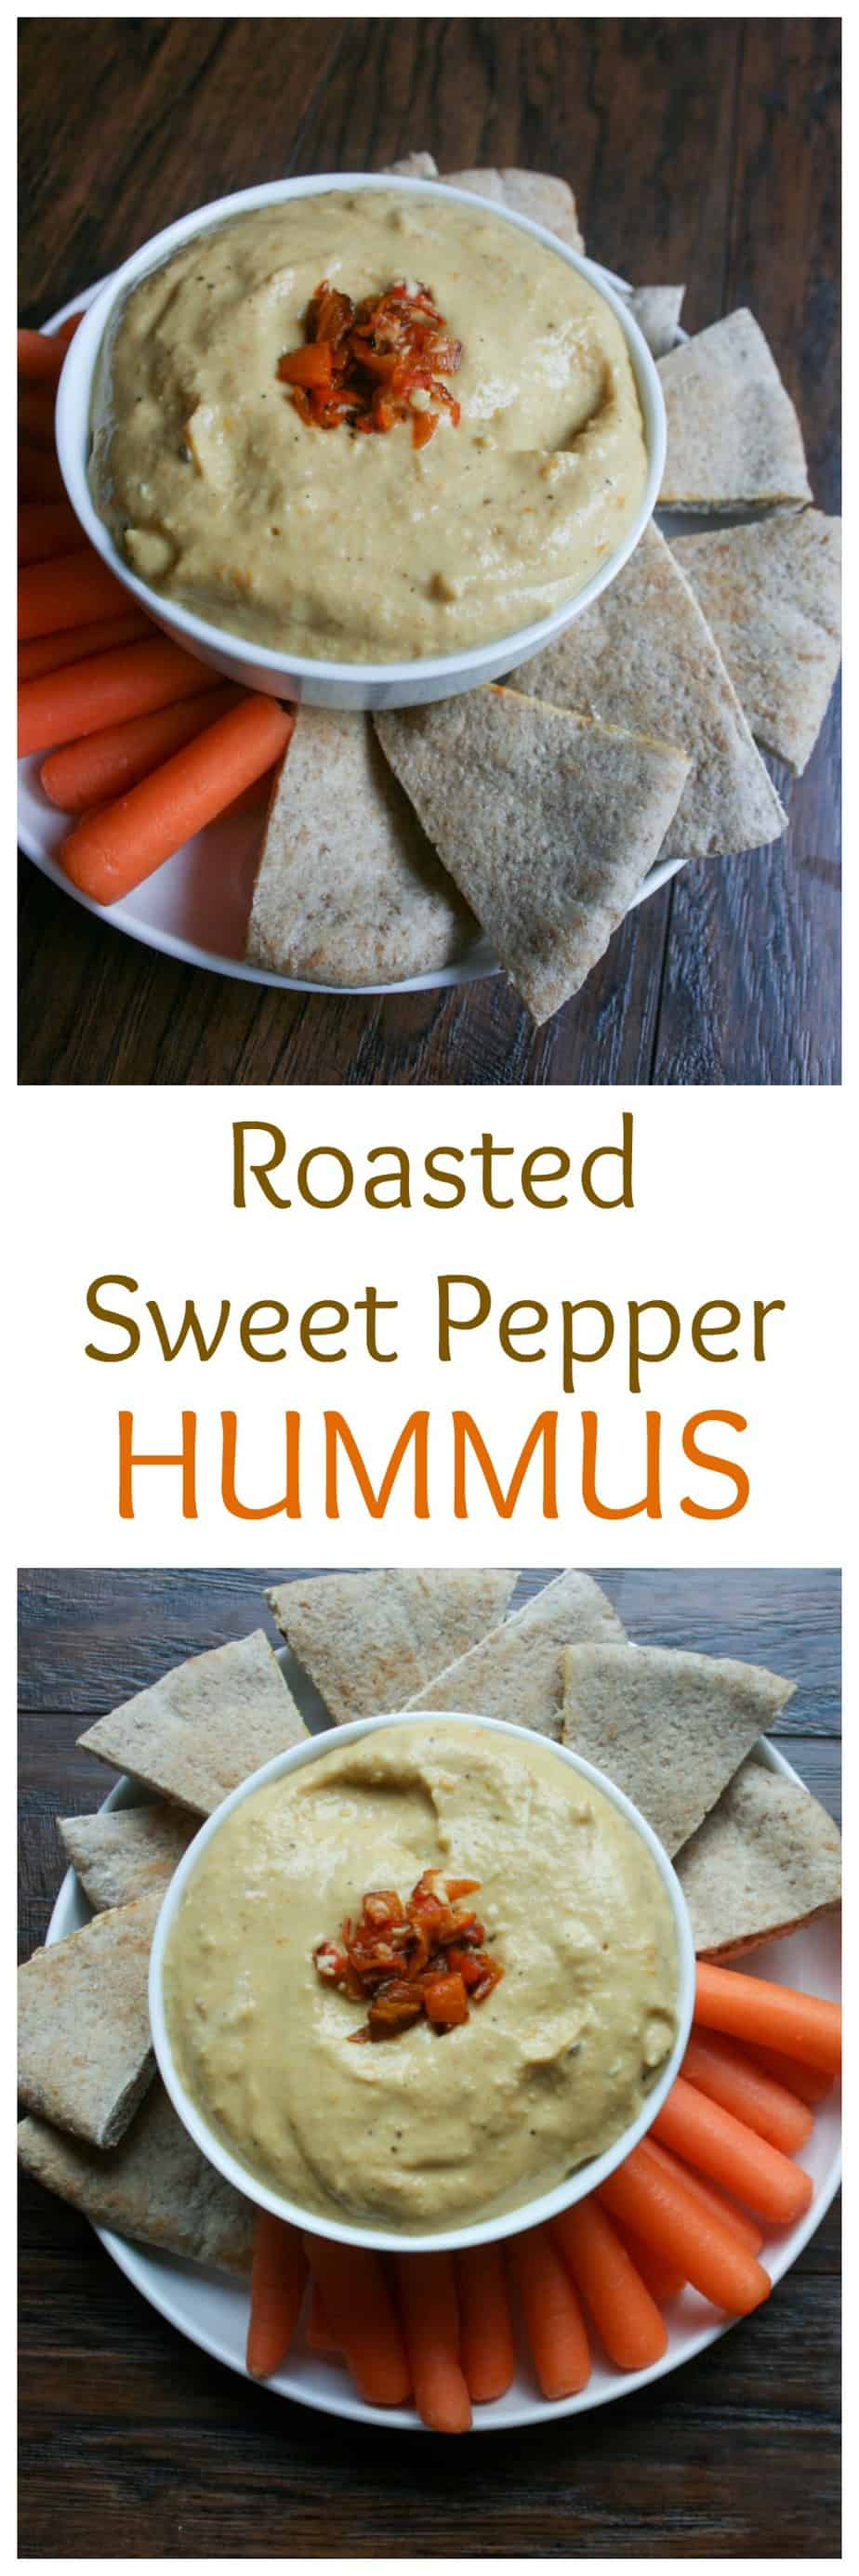 Sweet Pepper Hummus is the perfect appetizer when you want something filly, salty and sweet all at the same time!